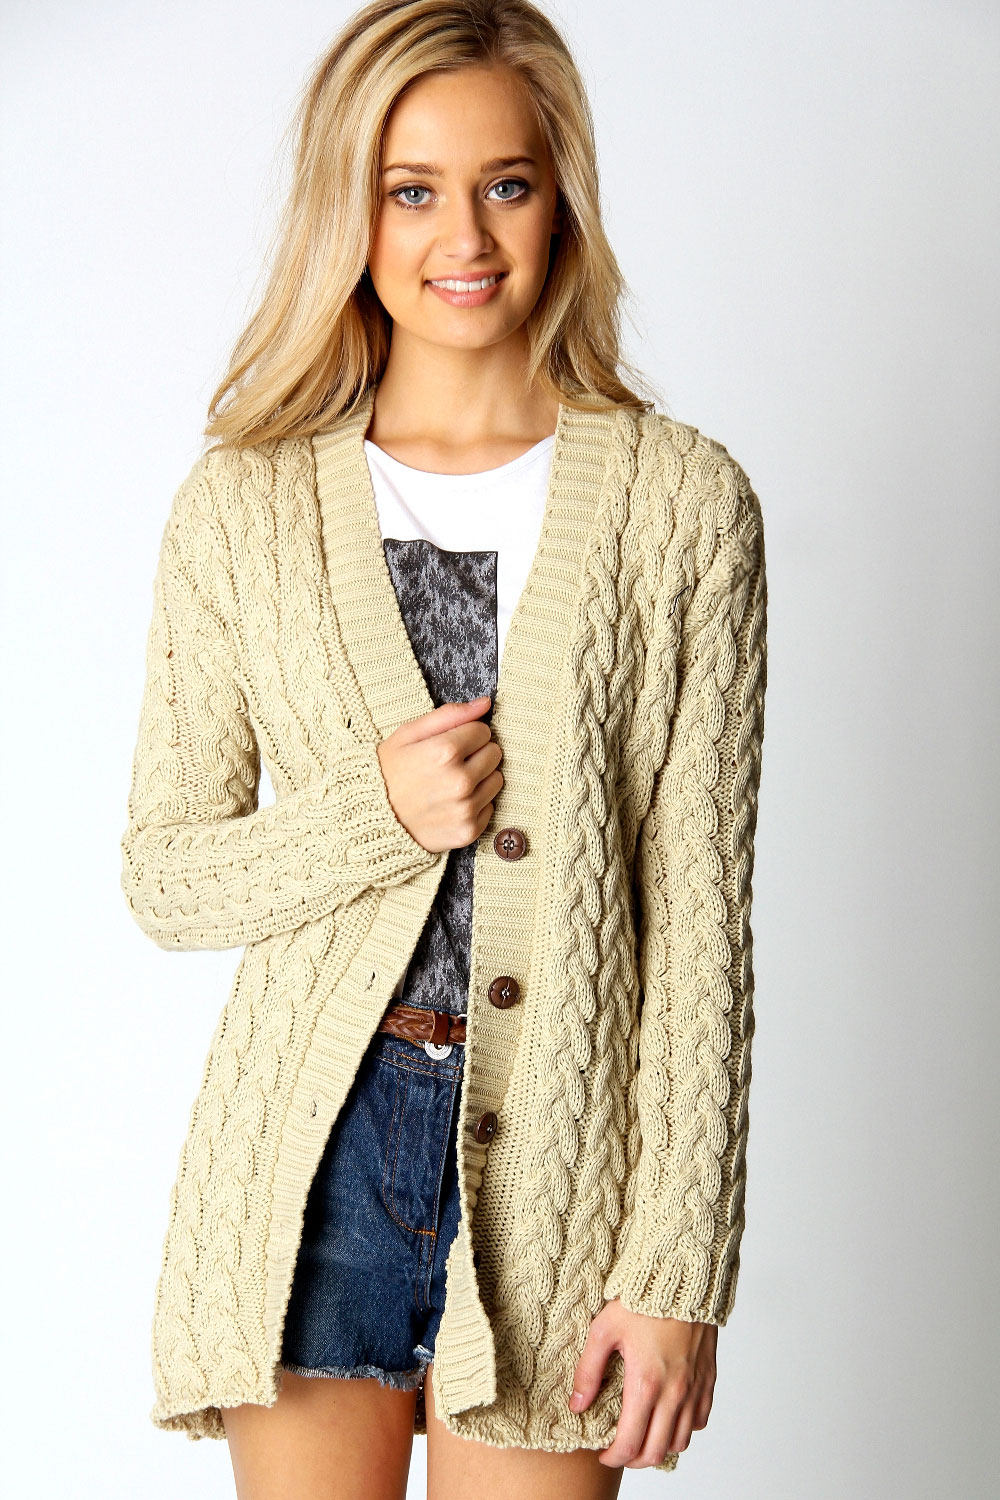 Sneak-Peek at the Cardigan Knitting Patterns You'll Make: Soft Cardigan Knitted with Lace and Cables. Katharine Hepburn Jacket by Kathy Zimmerman Lace and cables. Cables and lace. However you pair the two, you're bound to come up with a winning combination of knitted cardigans.